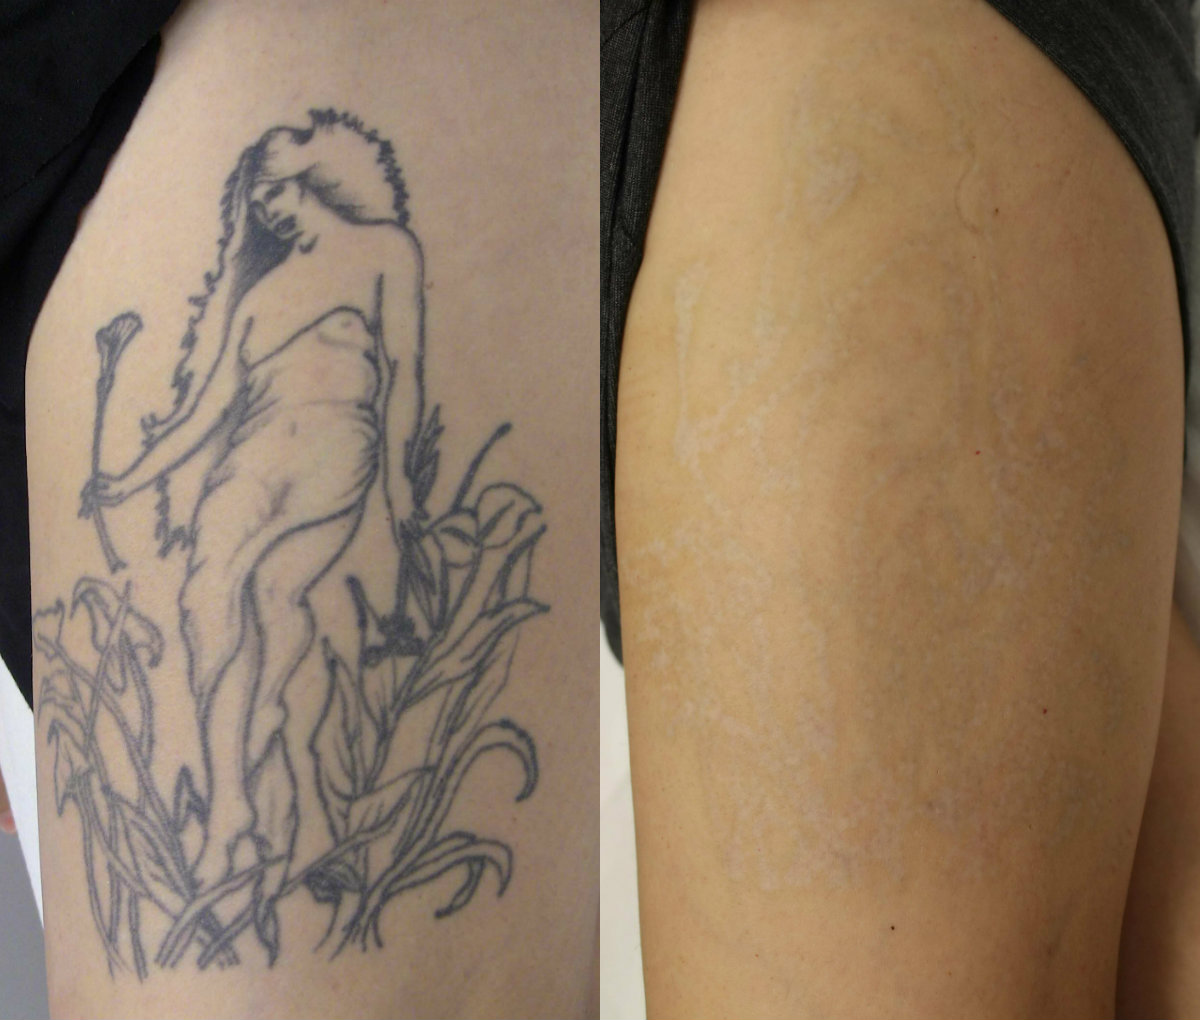 Laser tattoo removal is a medical procedure that deserves research and